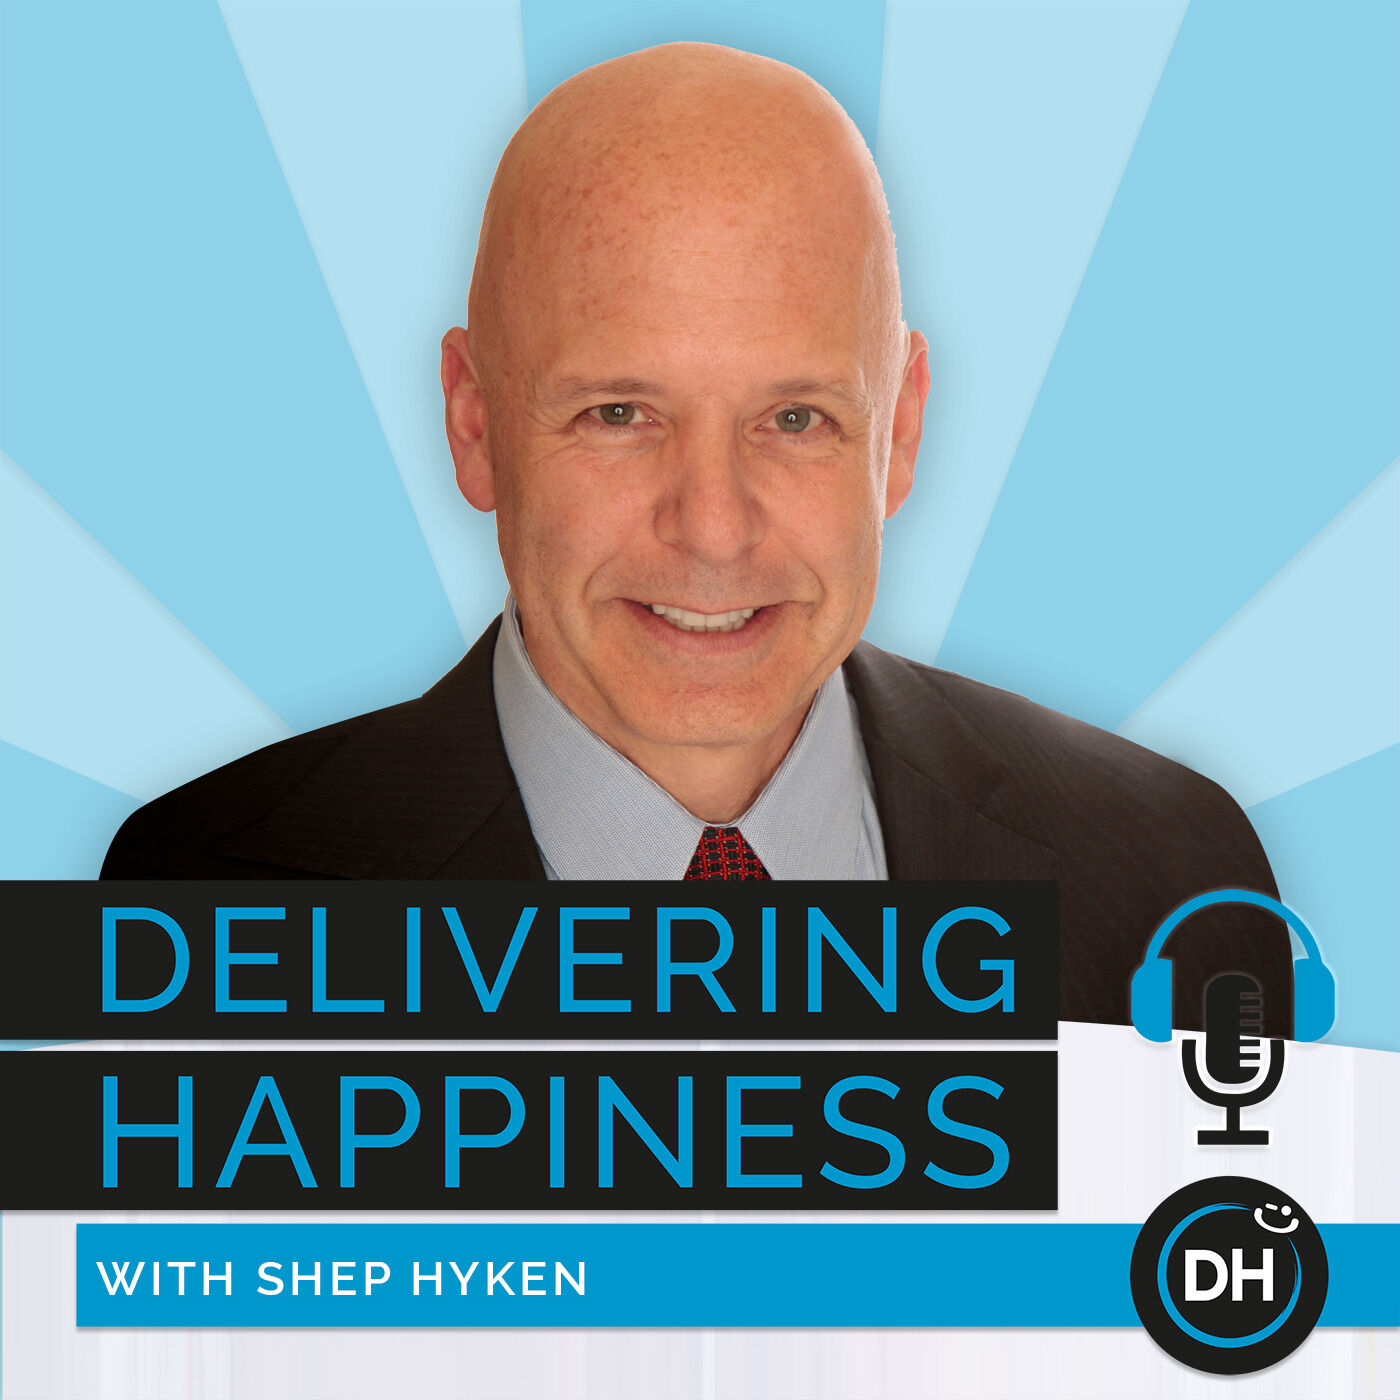 How to WOW Your Clients with Amazing Customer Experiences | Shep Hyken